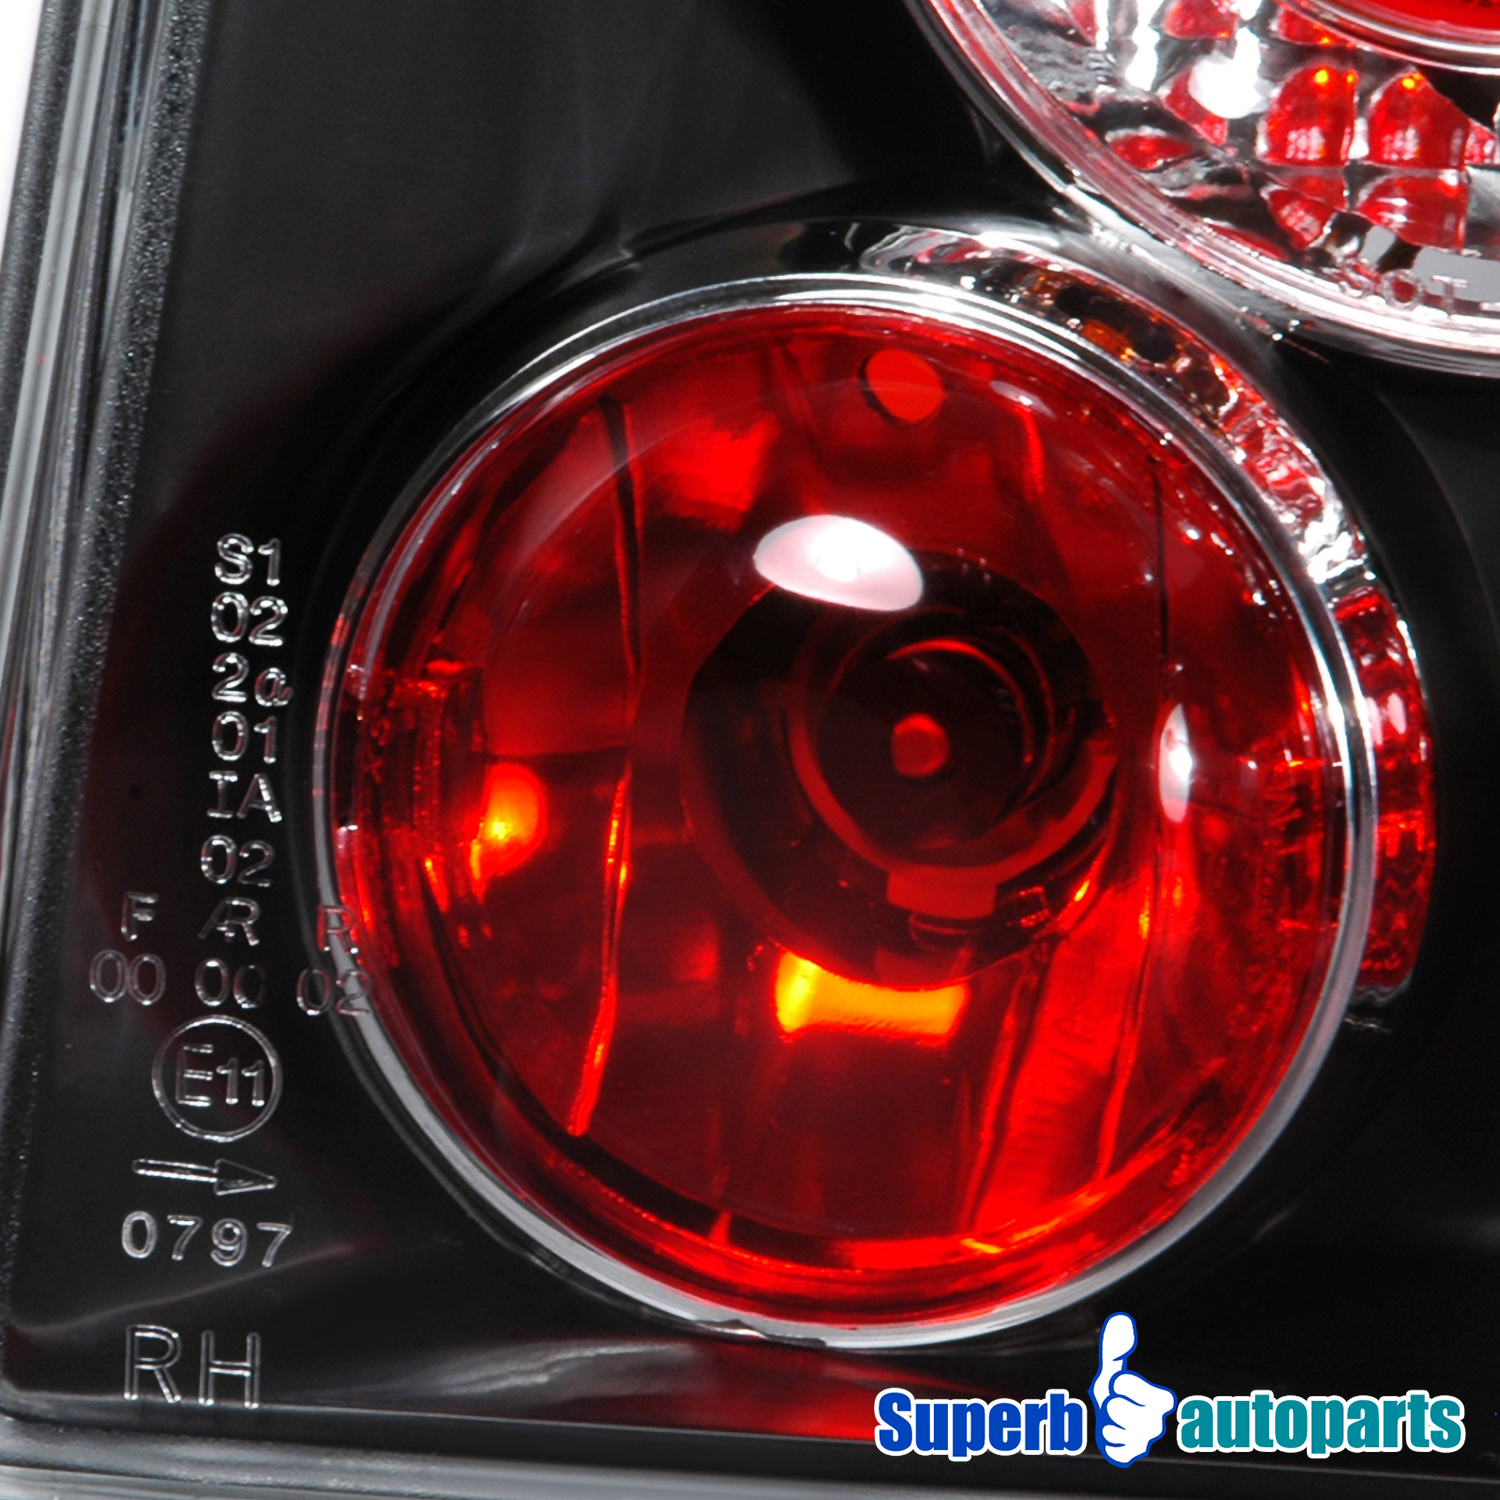 2001 Vw Passat Tail Light Wiring Diagram Image Details